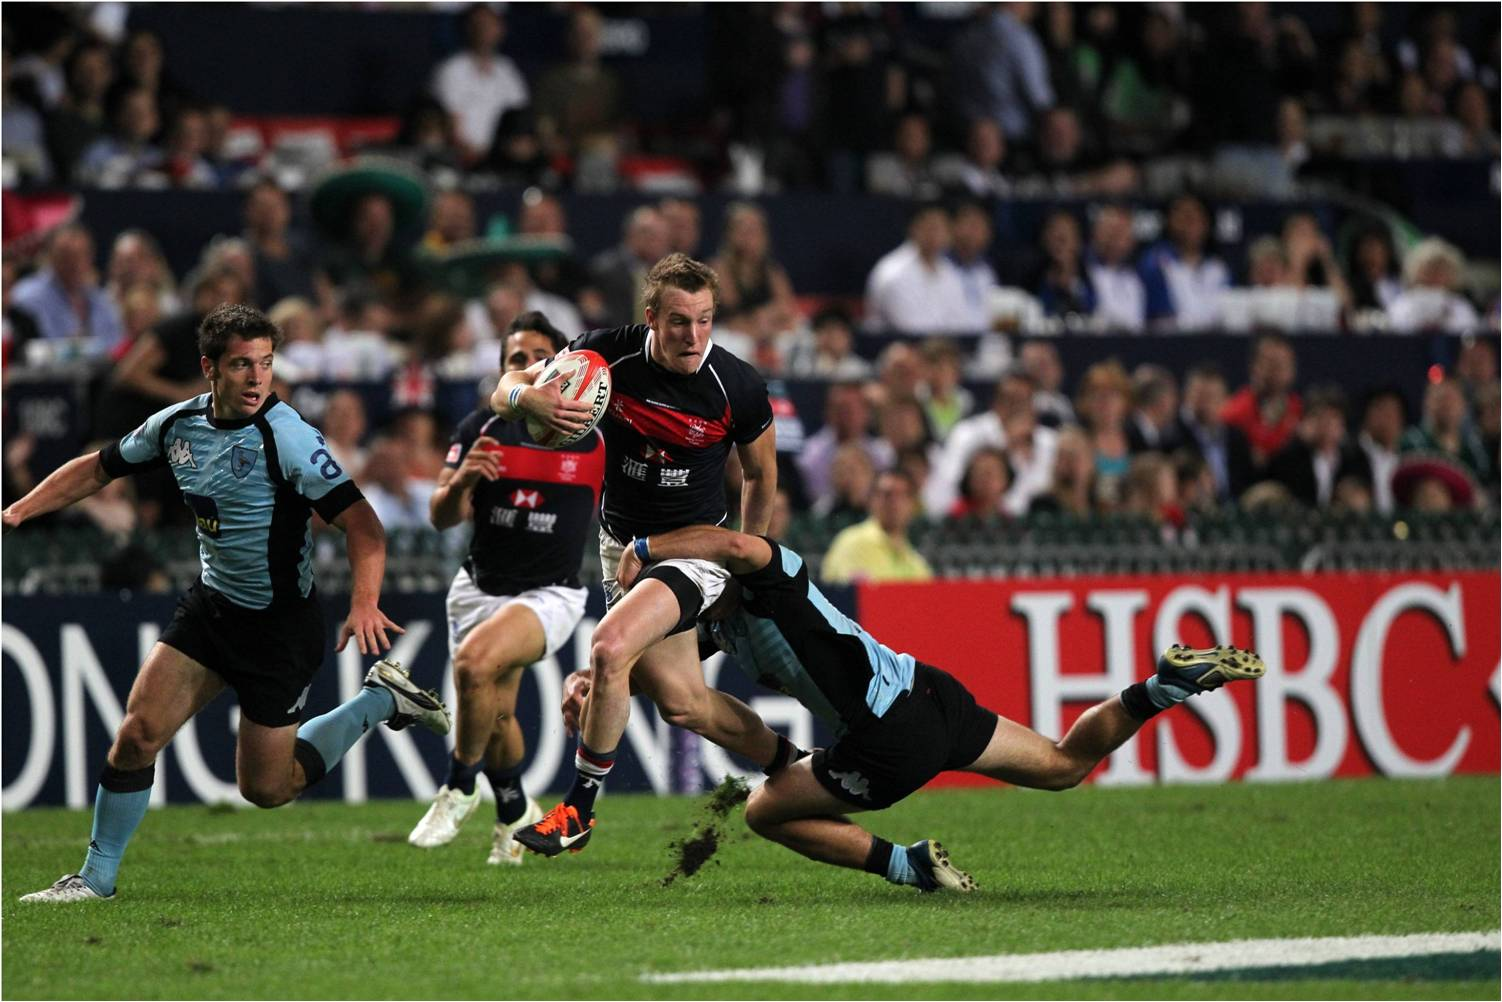 Glorious Fiji win Hong Kong Sevens as three book core status on 2012/13 Series